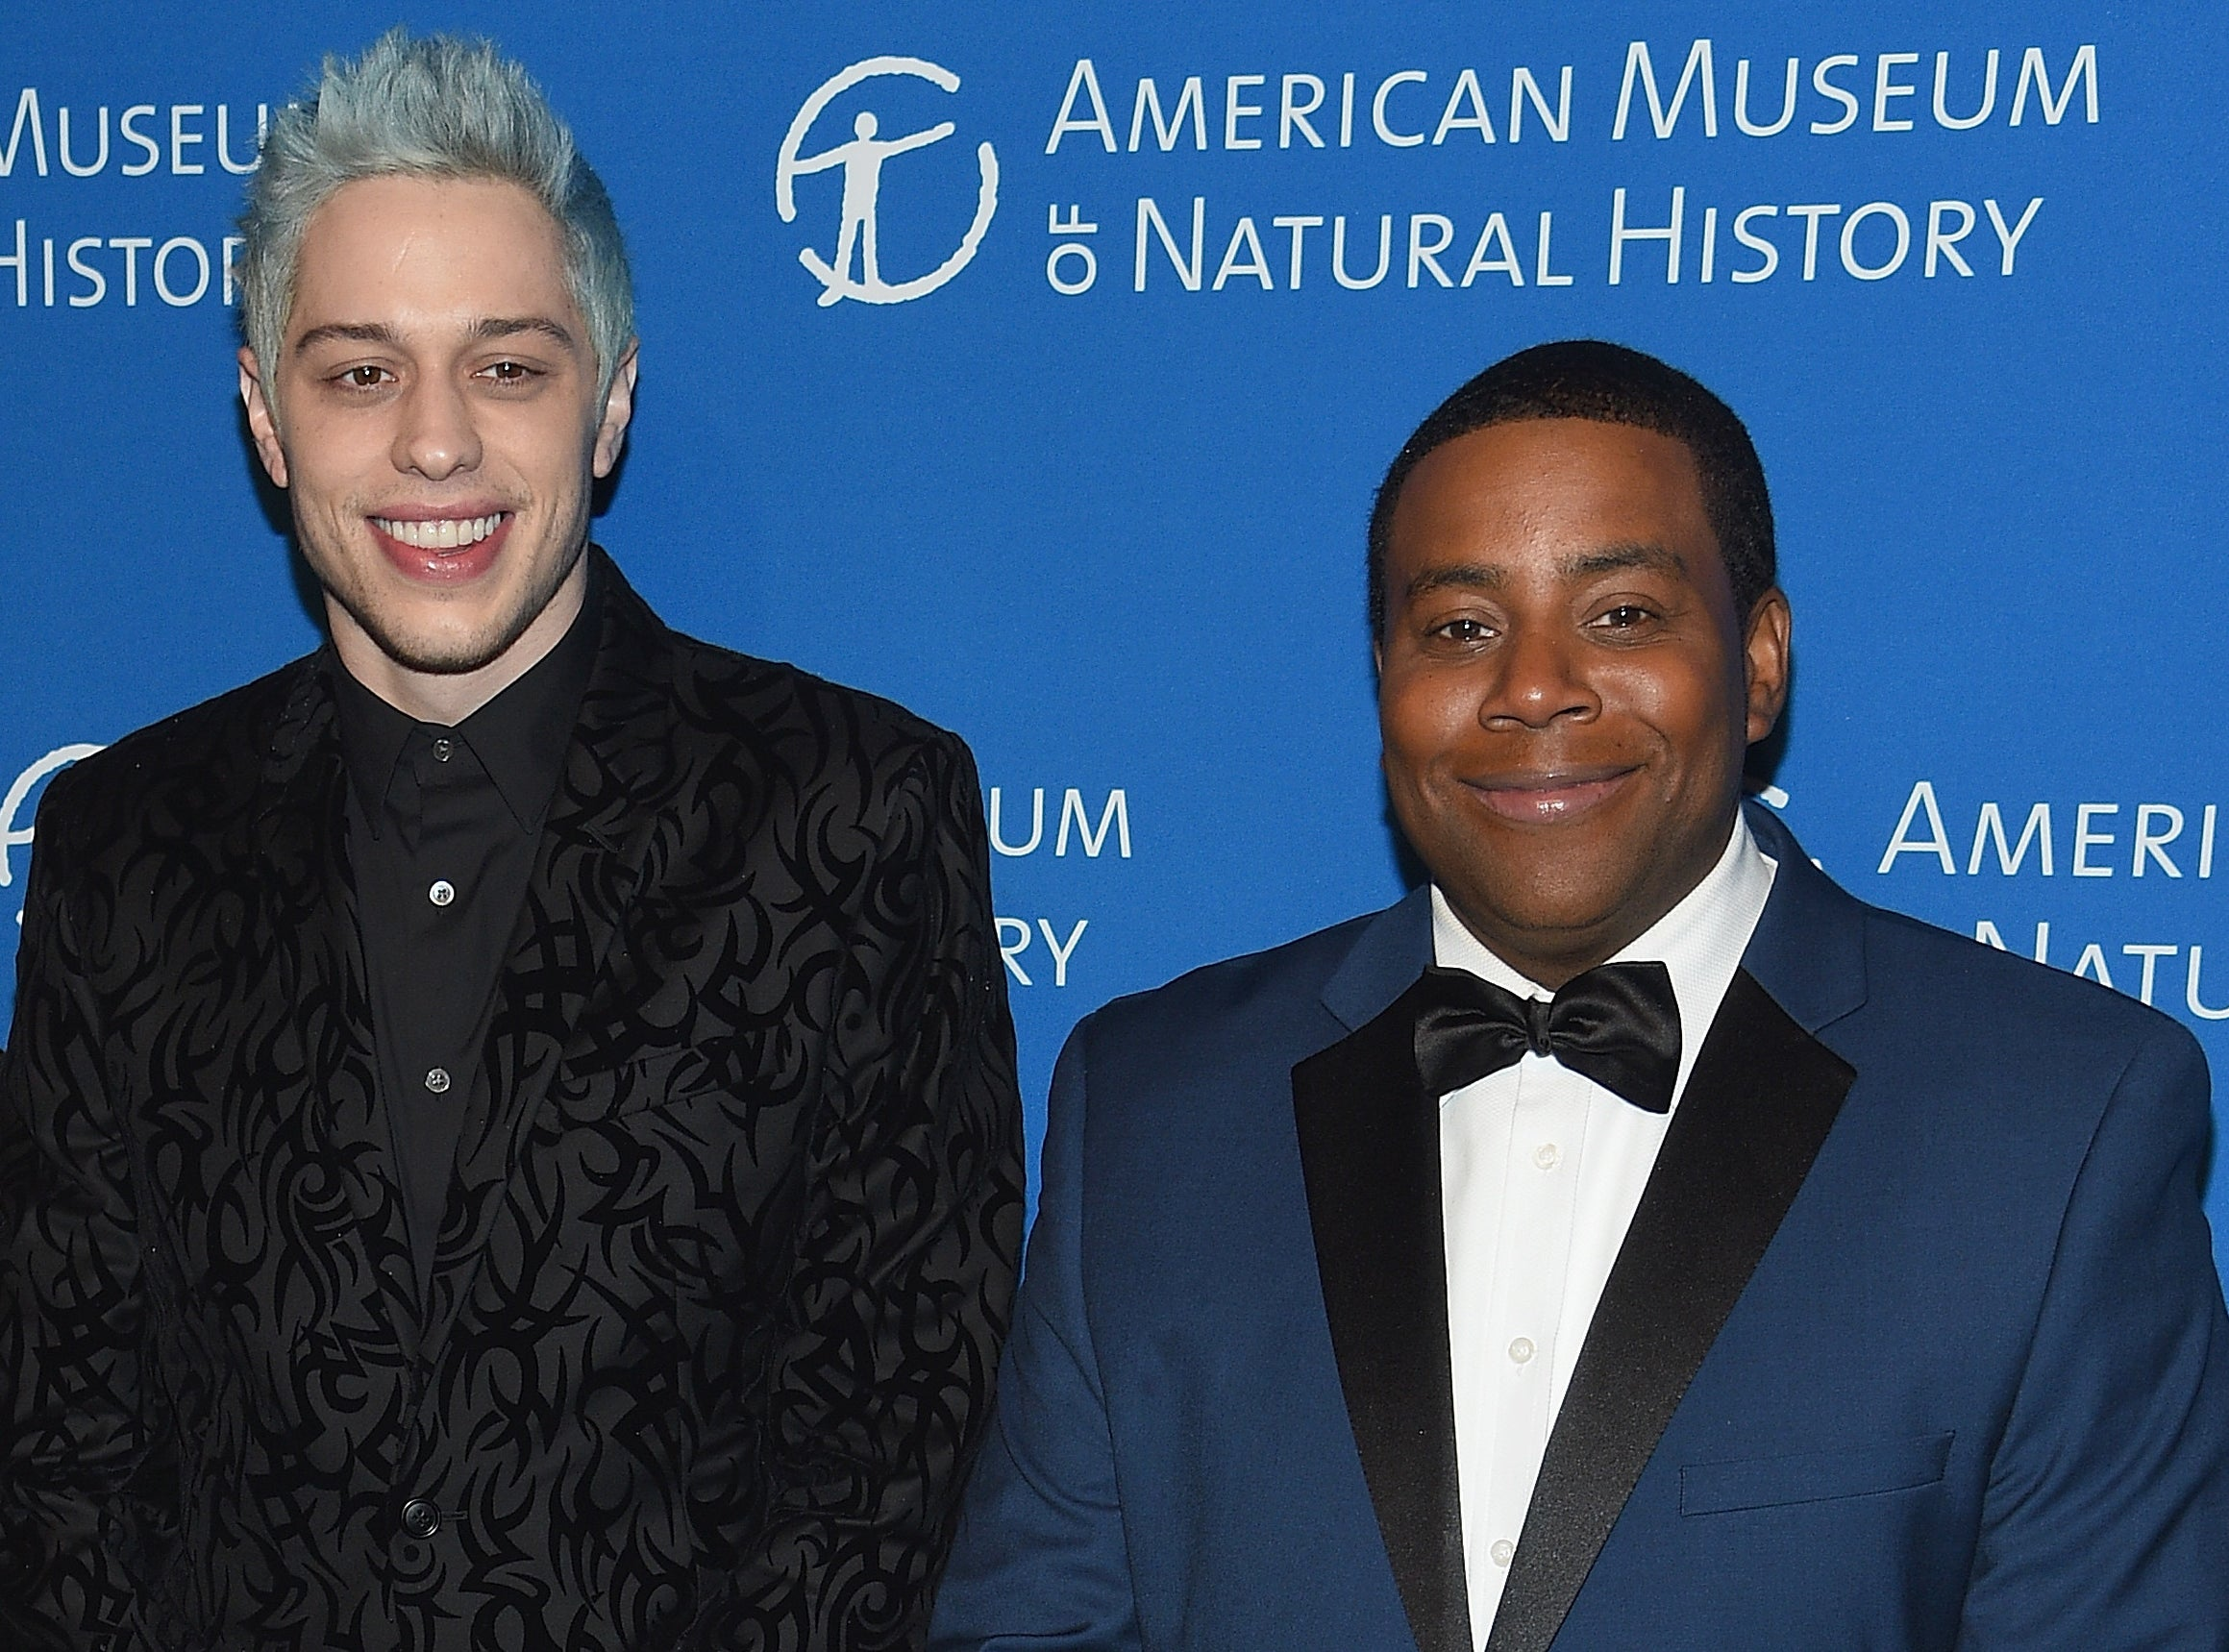 Pete stands next to Keenan at an event